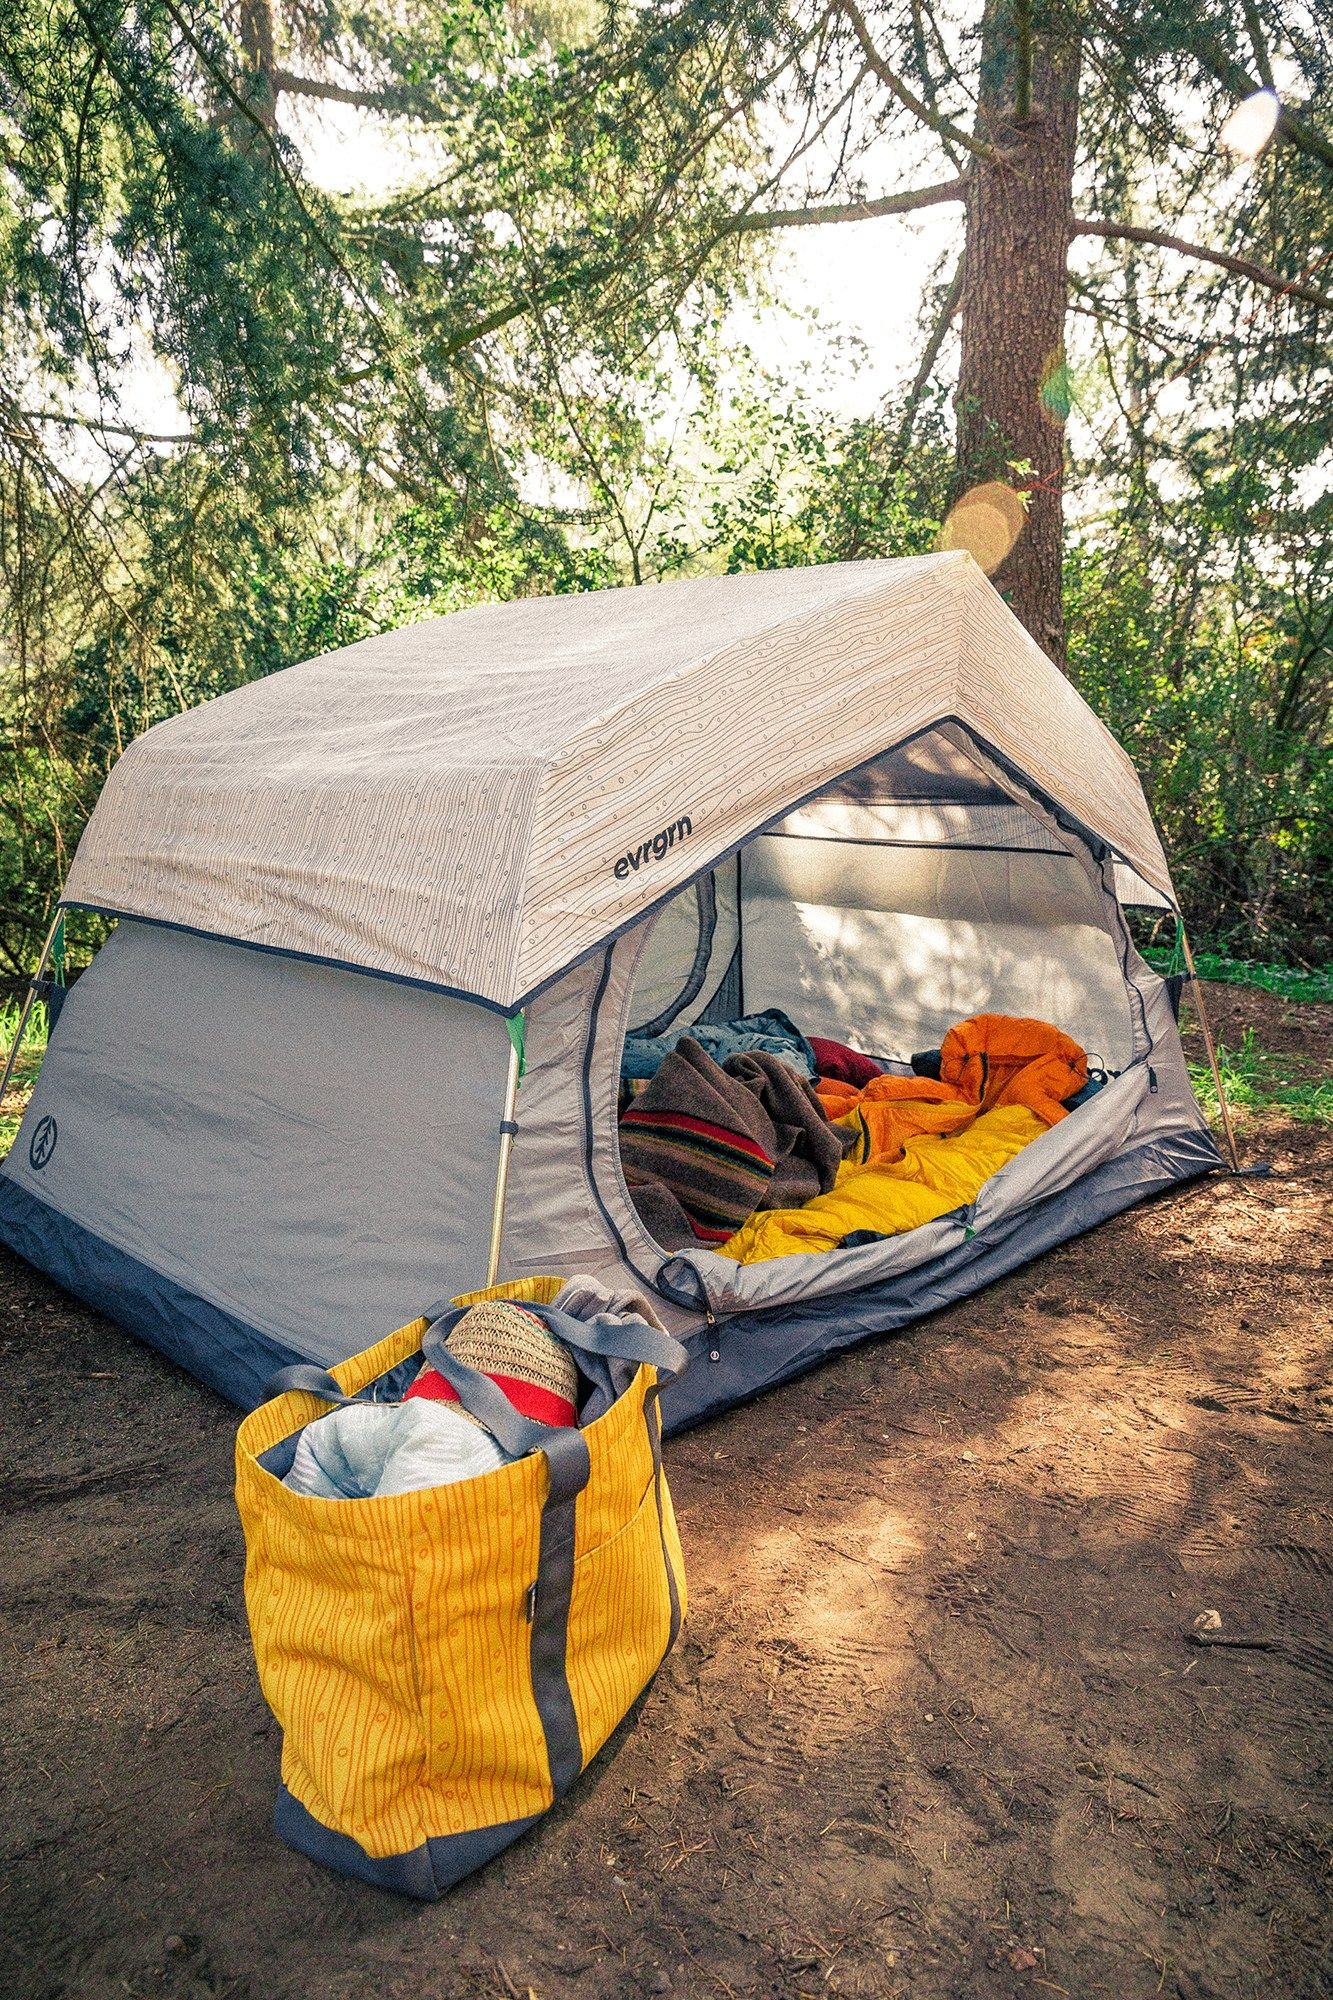 evrgrn Starry Night 2P Tent | REI Co-op | Tent, Tent ...